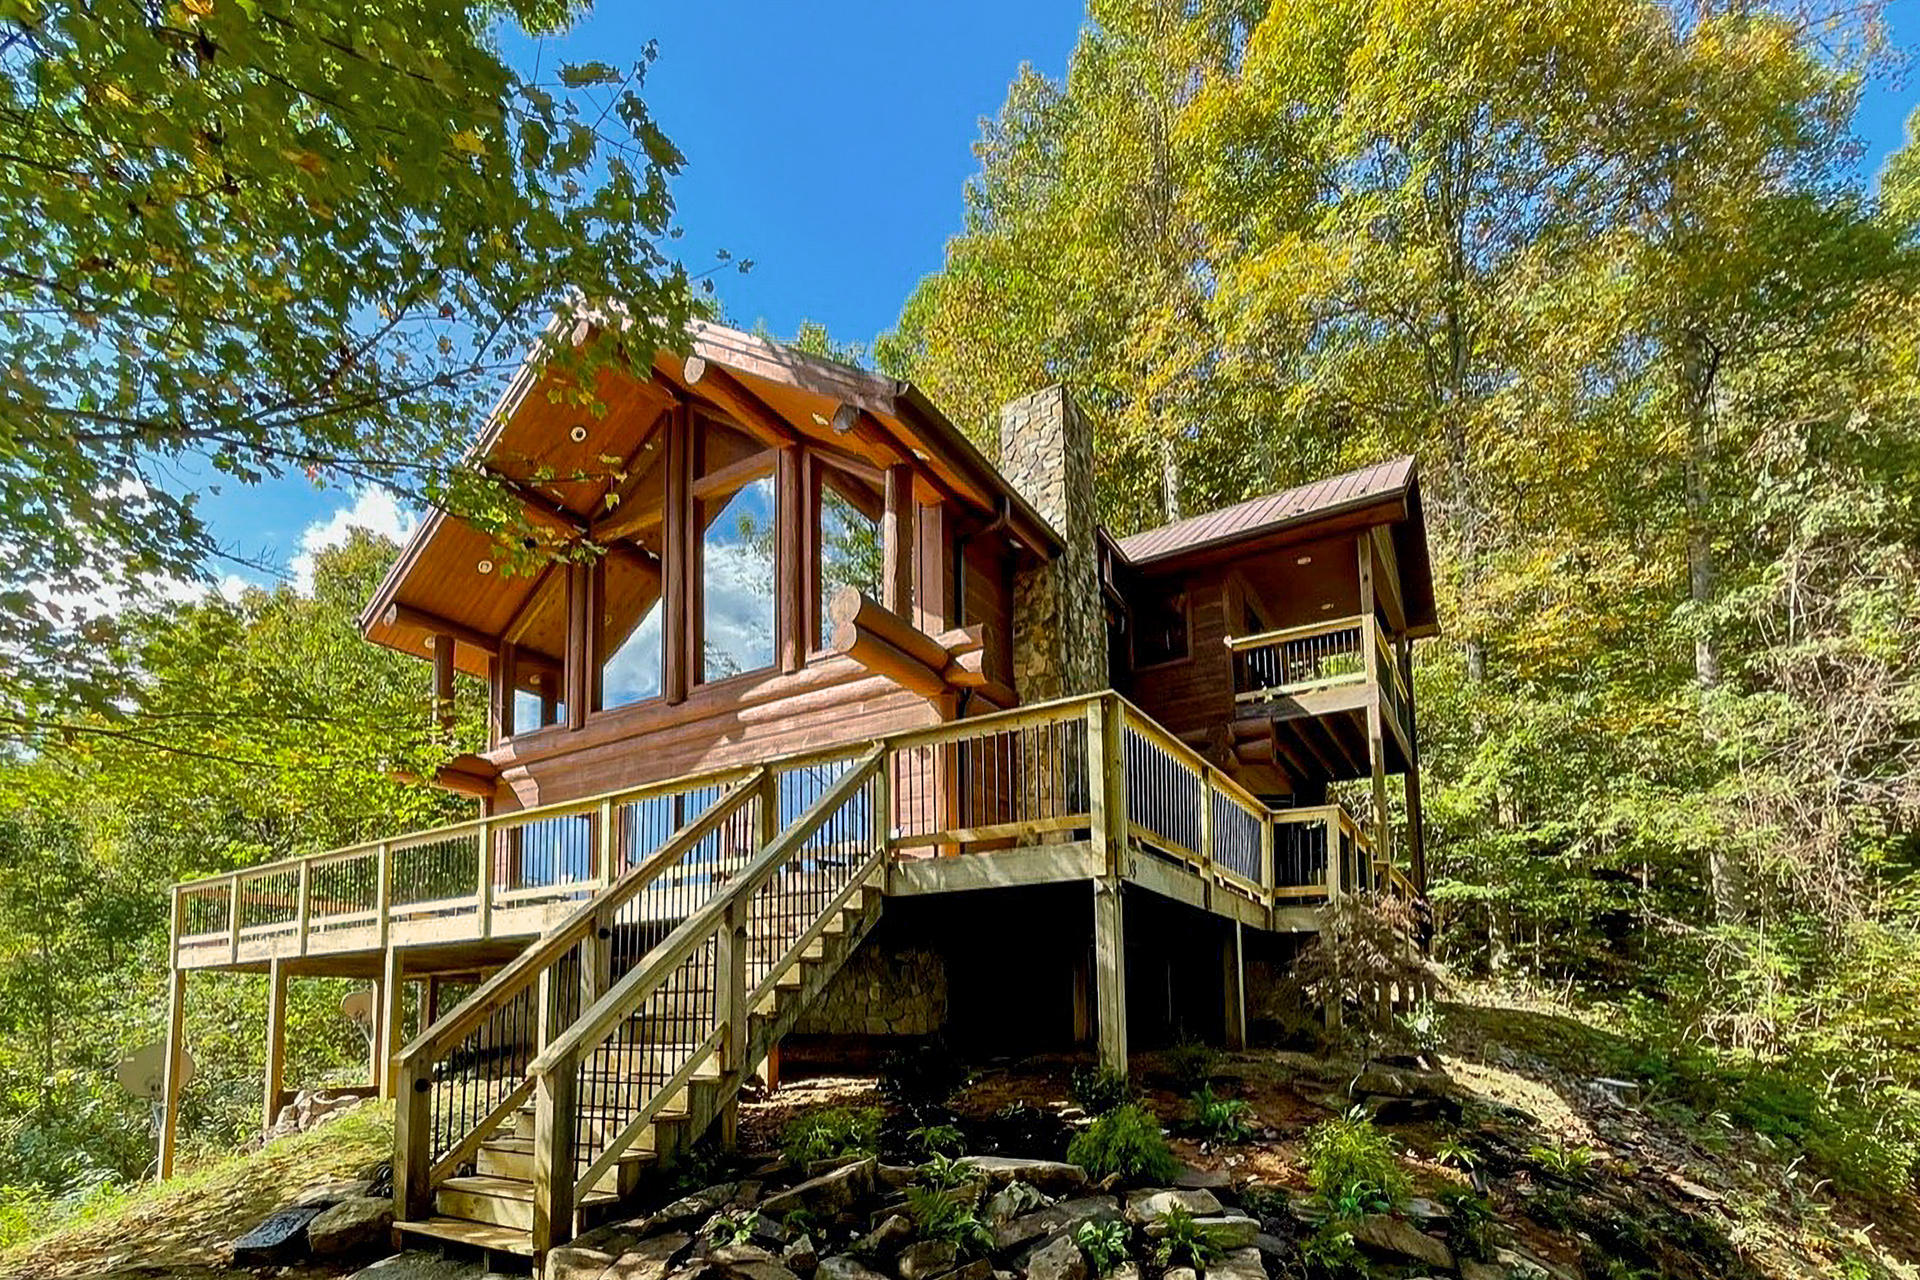 Cabin in the clouds vacation rental in nantahala nc for Vacation log homes